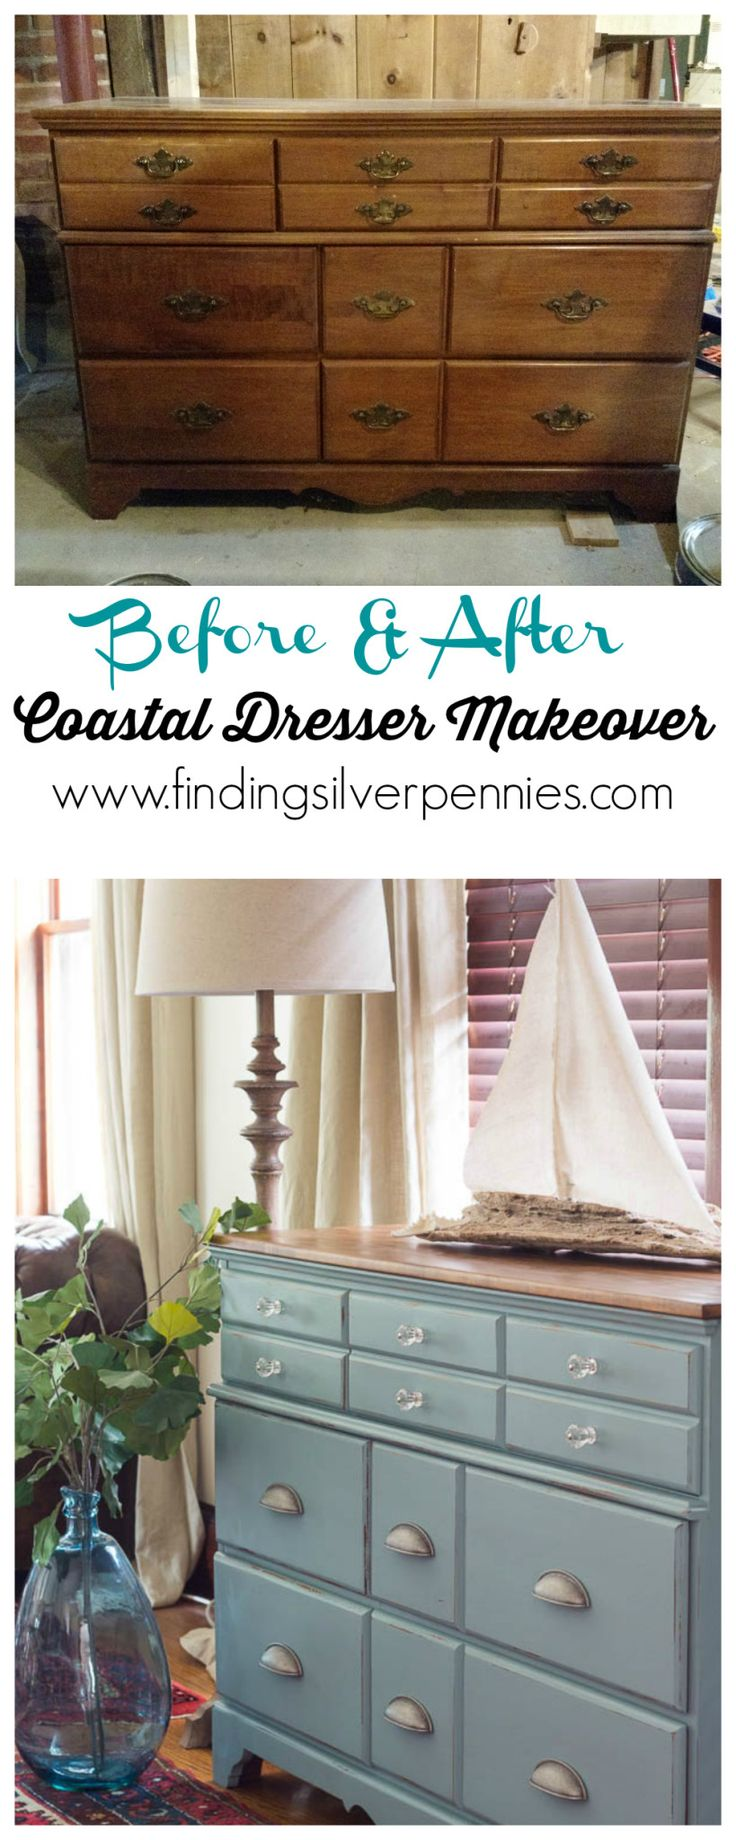 Before and After Coastal Dresser Makeover